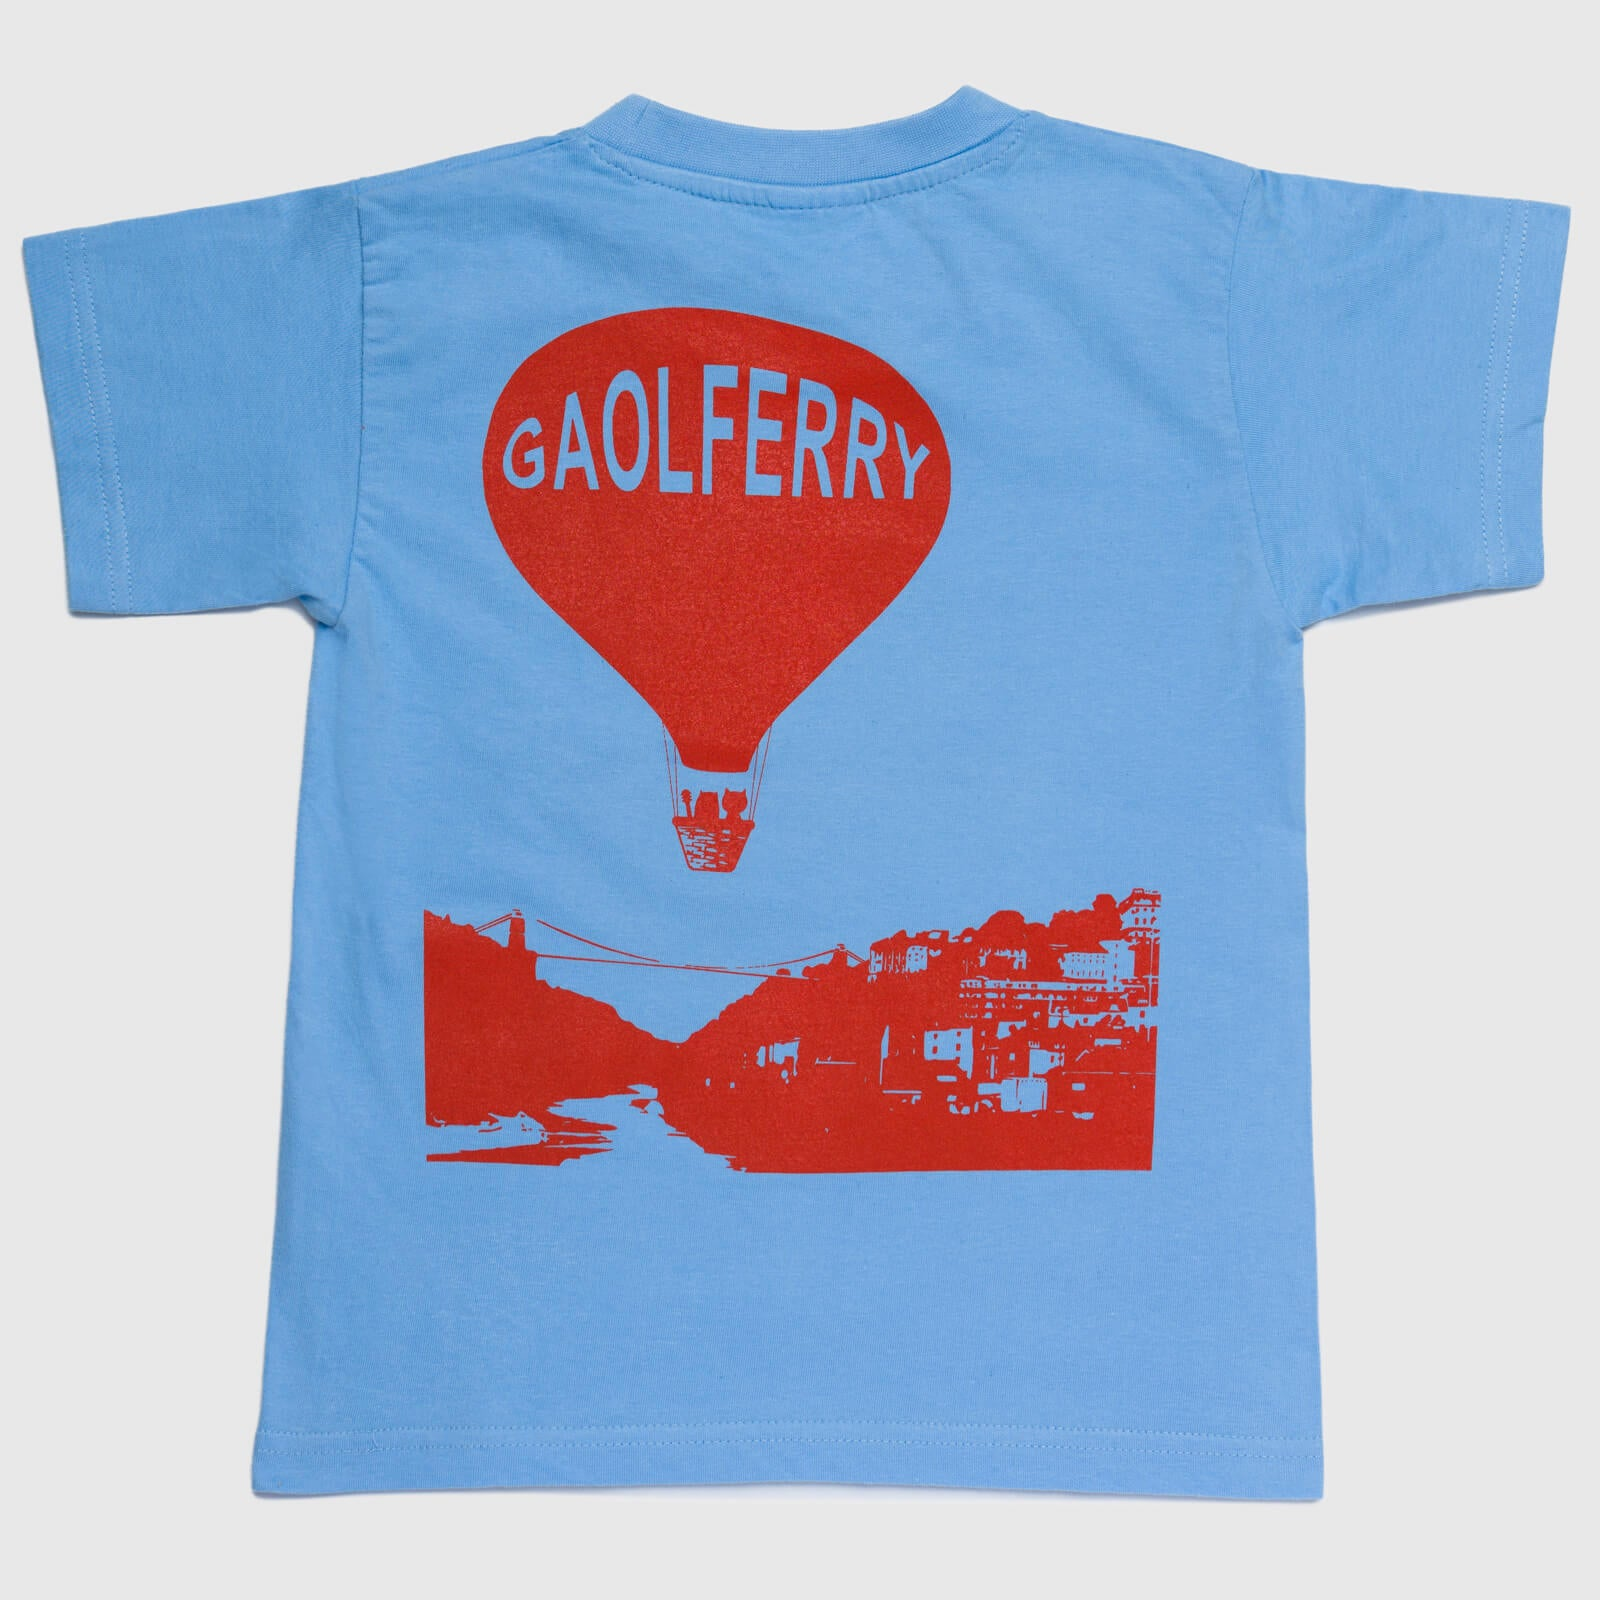 gaolferry sky blue t-shirt with screen printed image of the owl and the pussycat